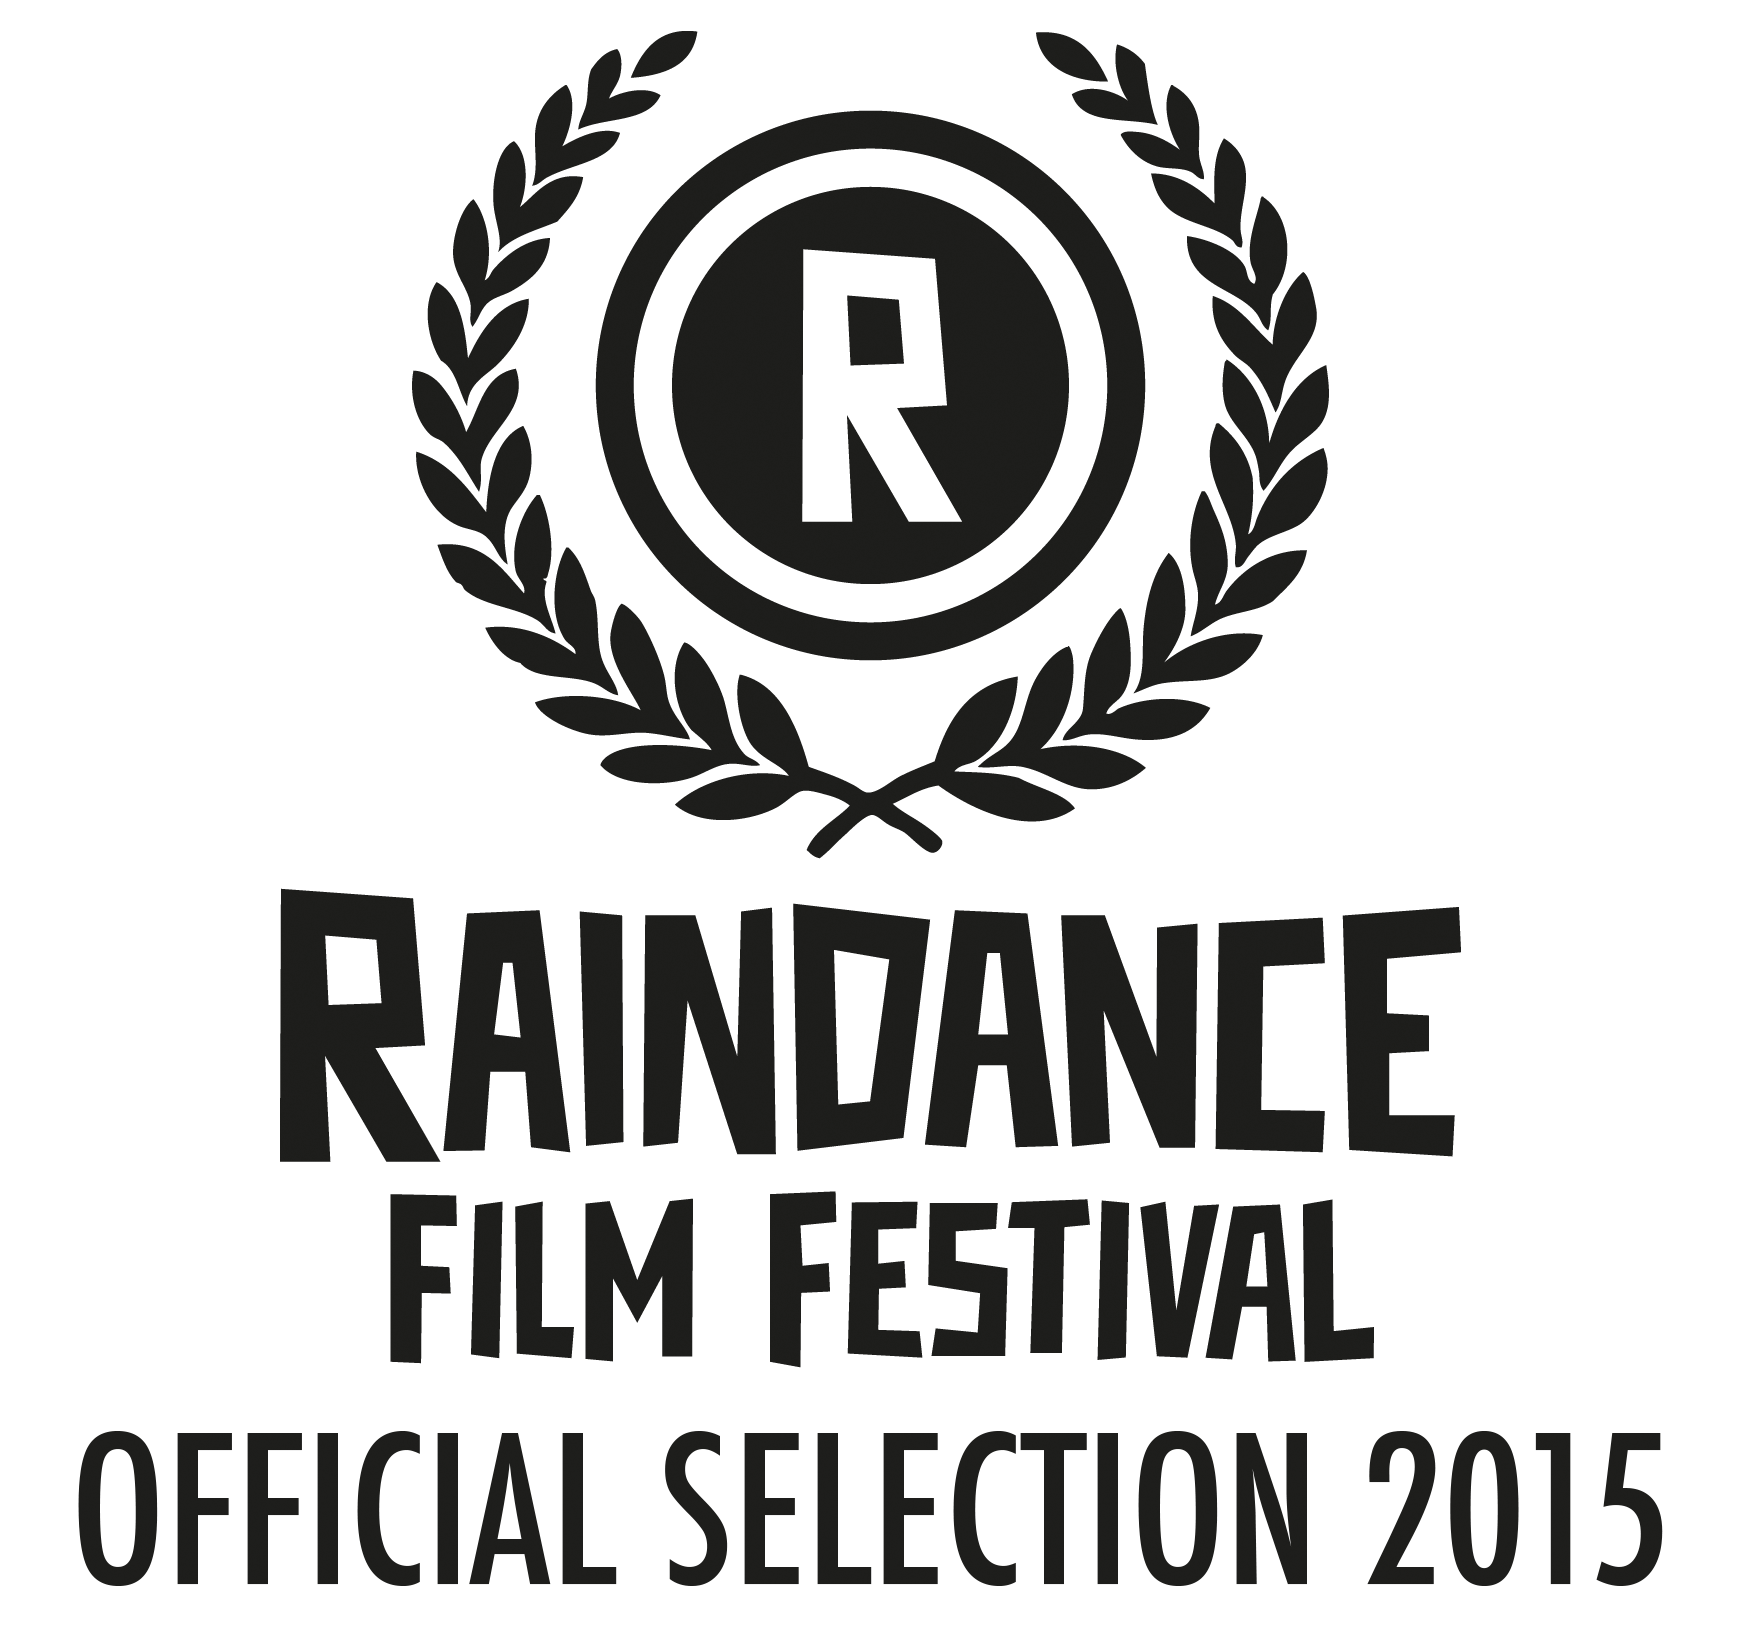 23RFF_FilmFestival_OfficialSelection.png